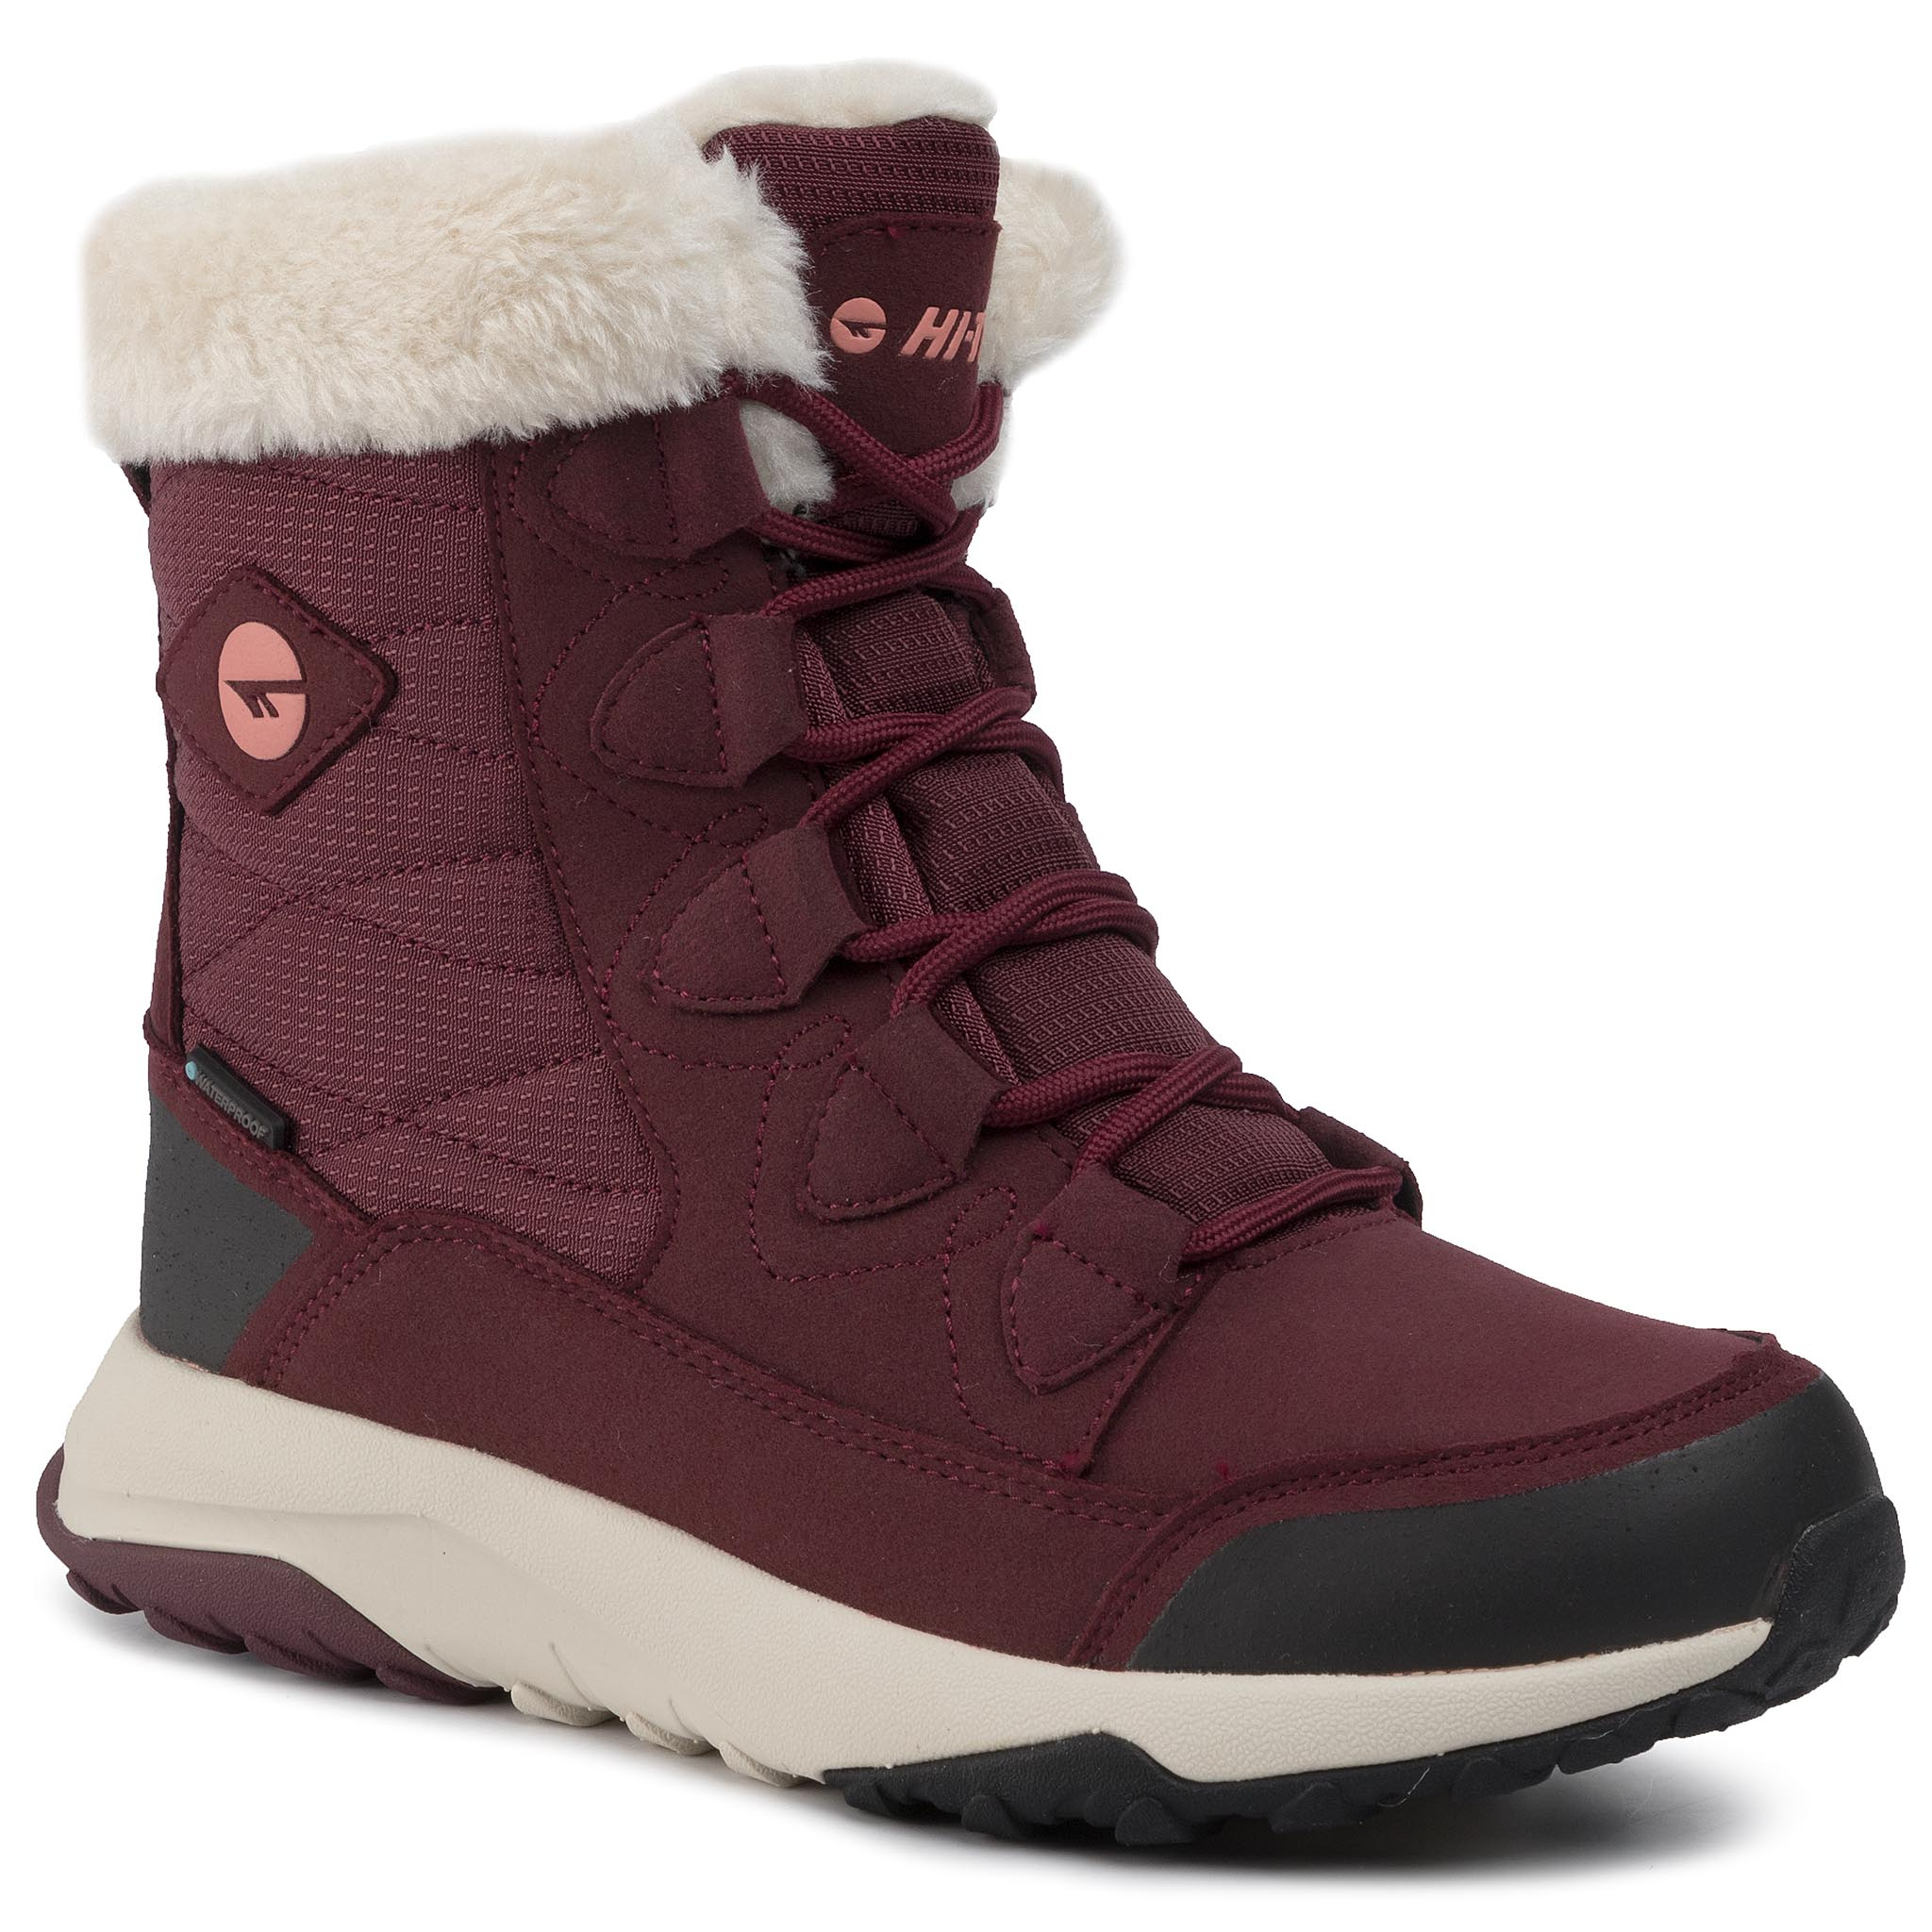 Trekkings Hi-Tec - Mestia Mid Wp Wo's Avsaw19-Ht-03-Q4 Dark Rose/Watermelon Red/Beige imagine epantofi.ro 2021